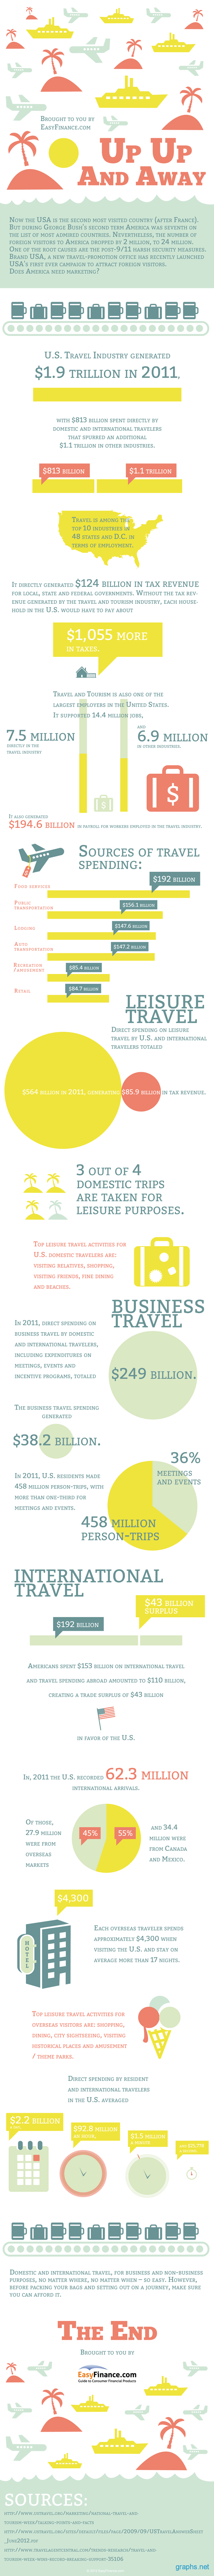 Travel Industry in America